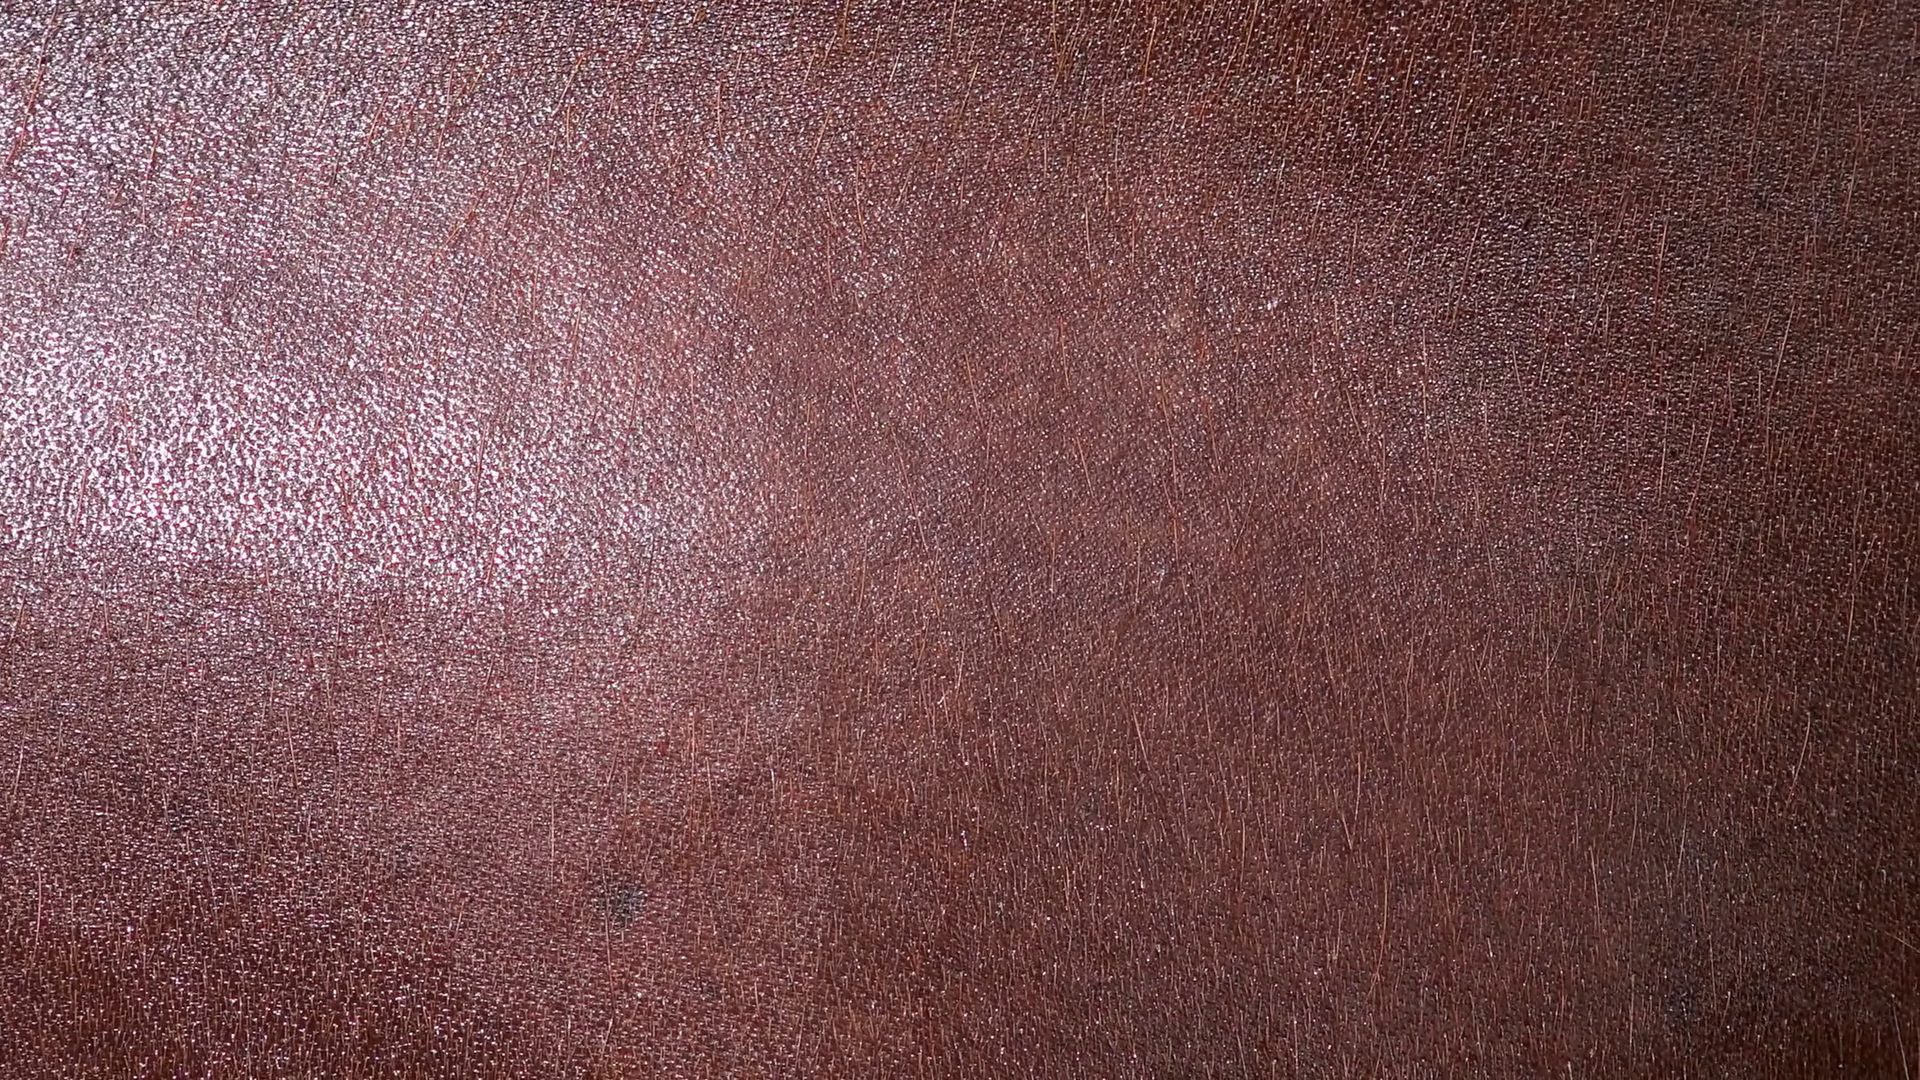 Download Skin Texture Png () png images.